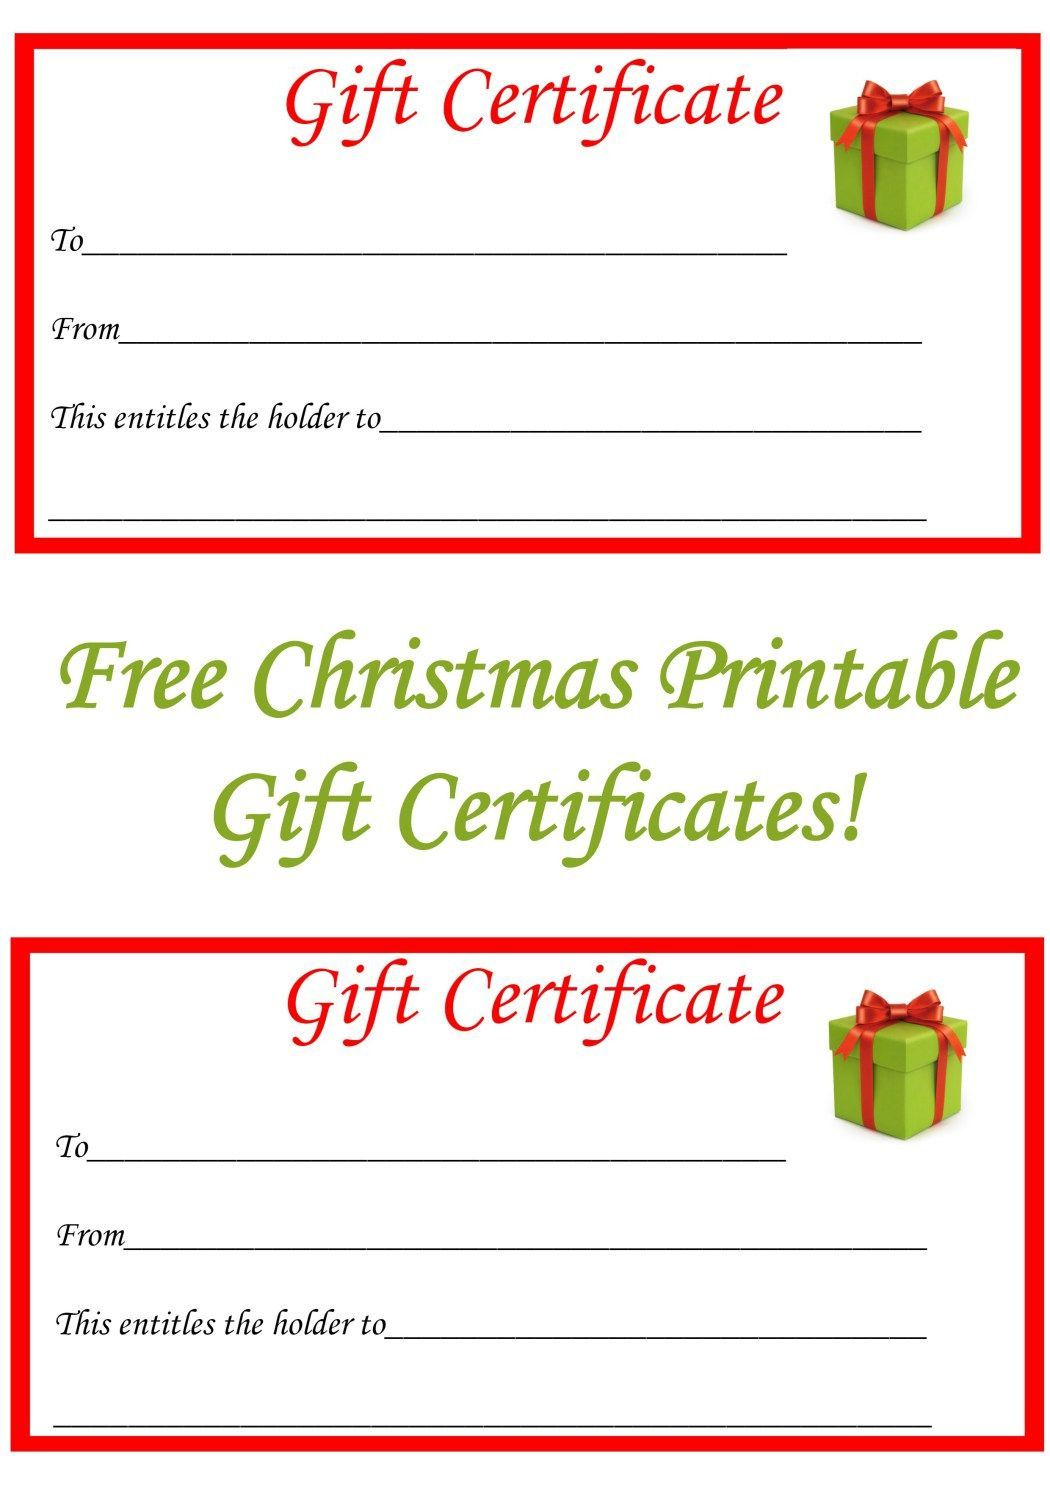 Free Christmas Printable Gift Certificates | Gift Ideas | Pinterest - Free Printable Gift Certificates